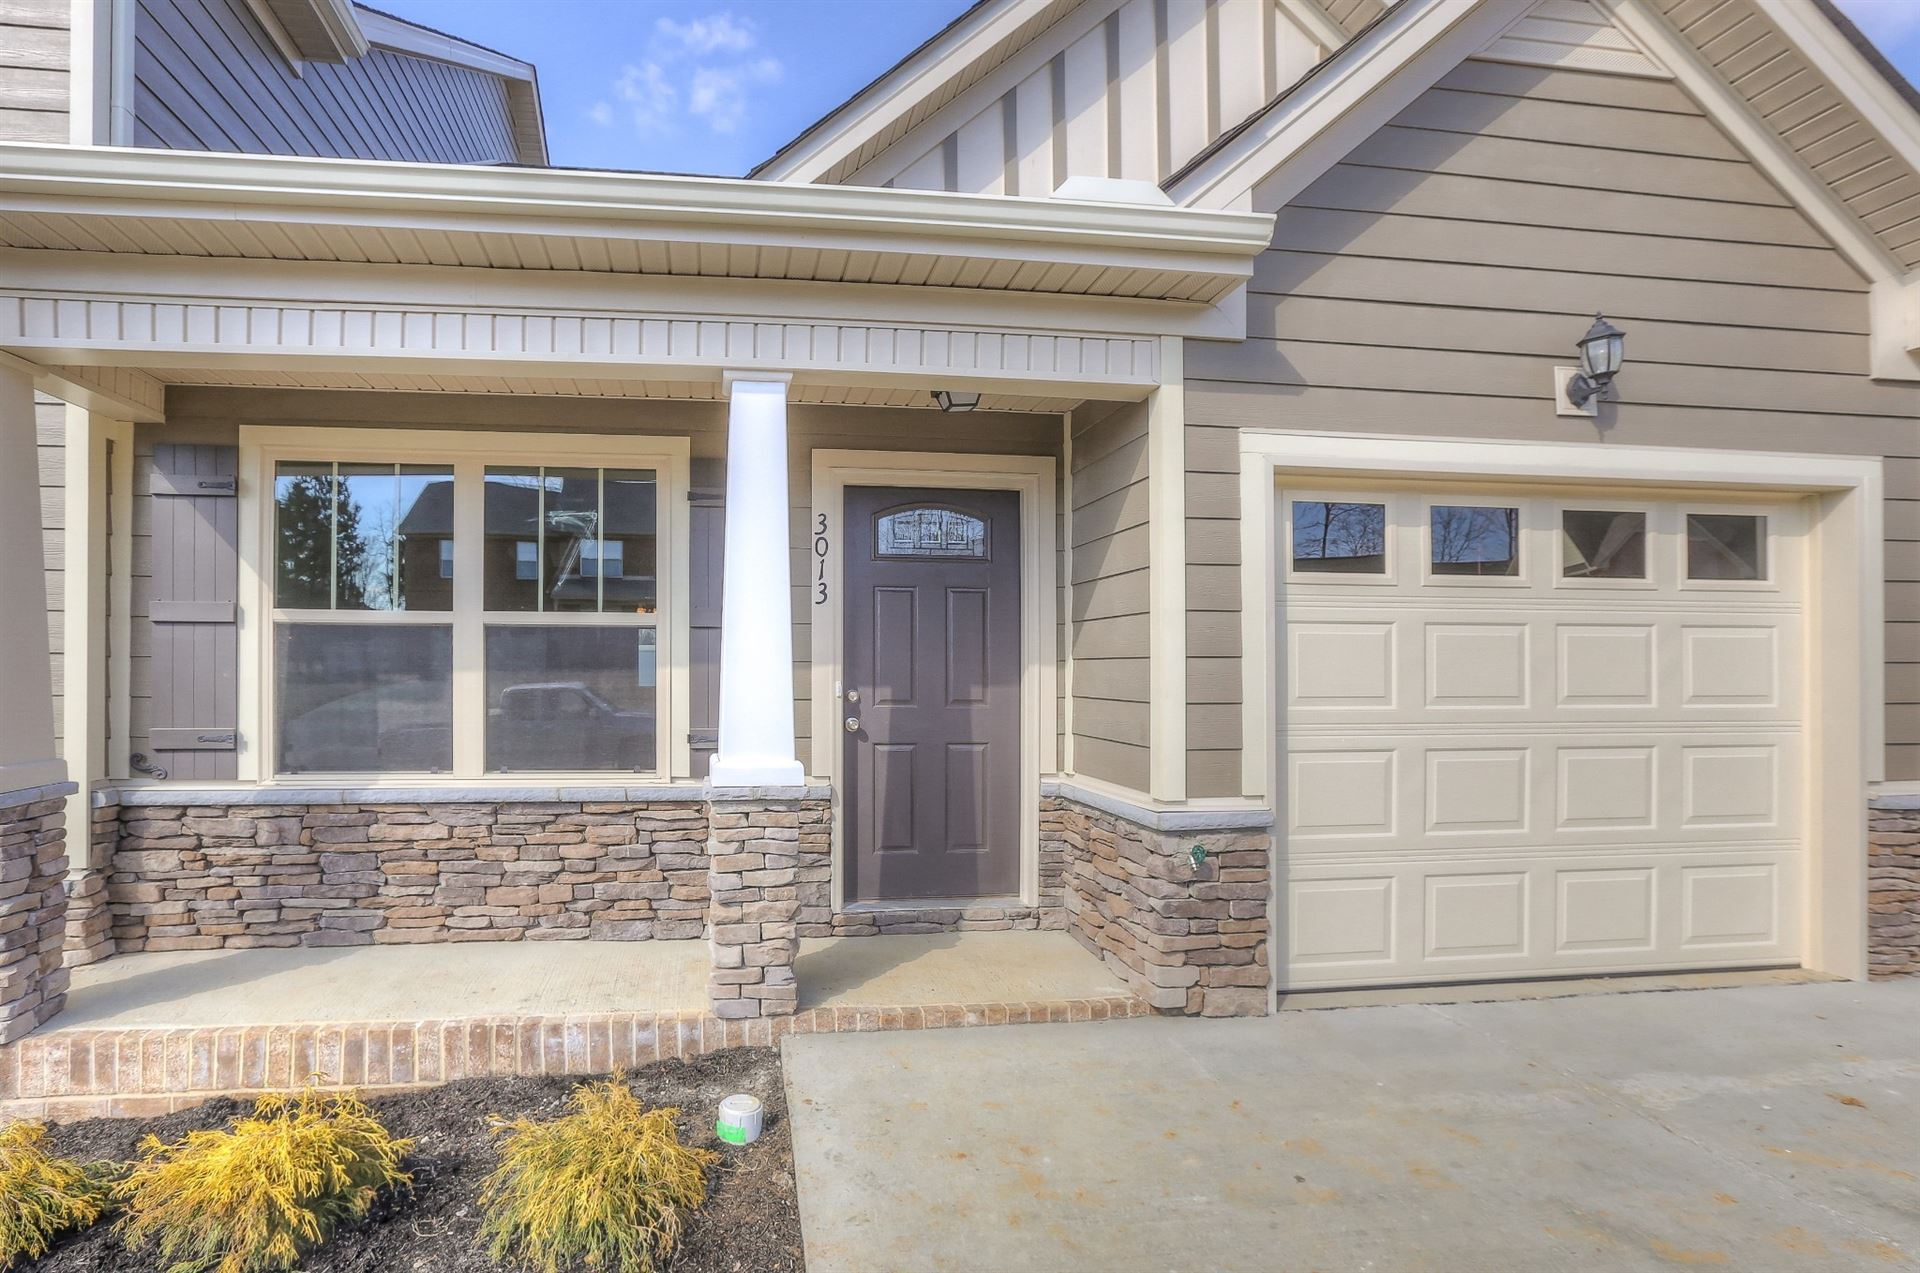 Photo of 100 Shannon Place Lot 1, Spring Hill, TN 37174 (MLS # 2190149)